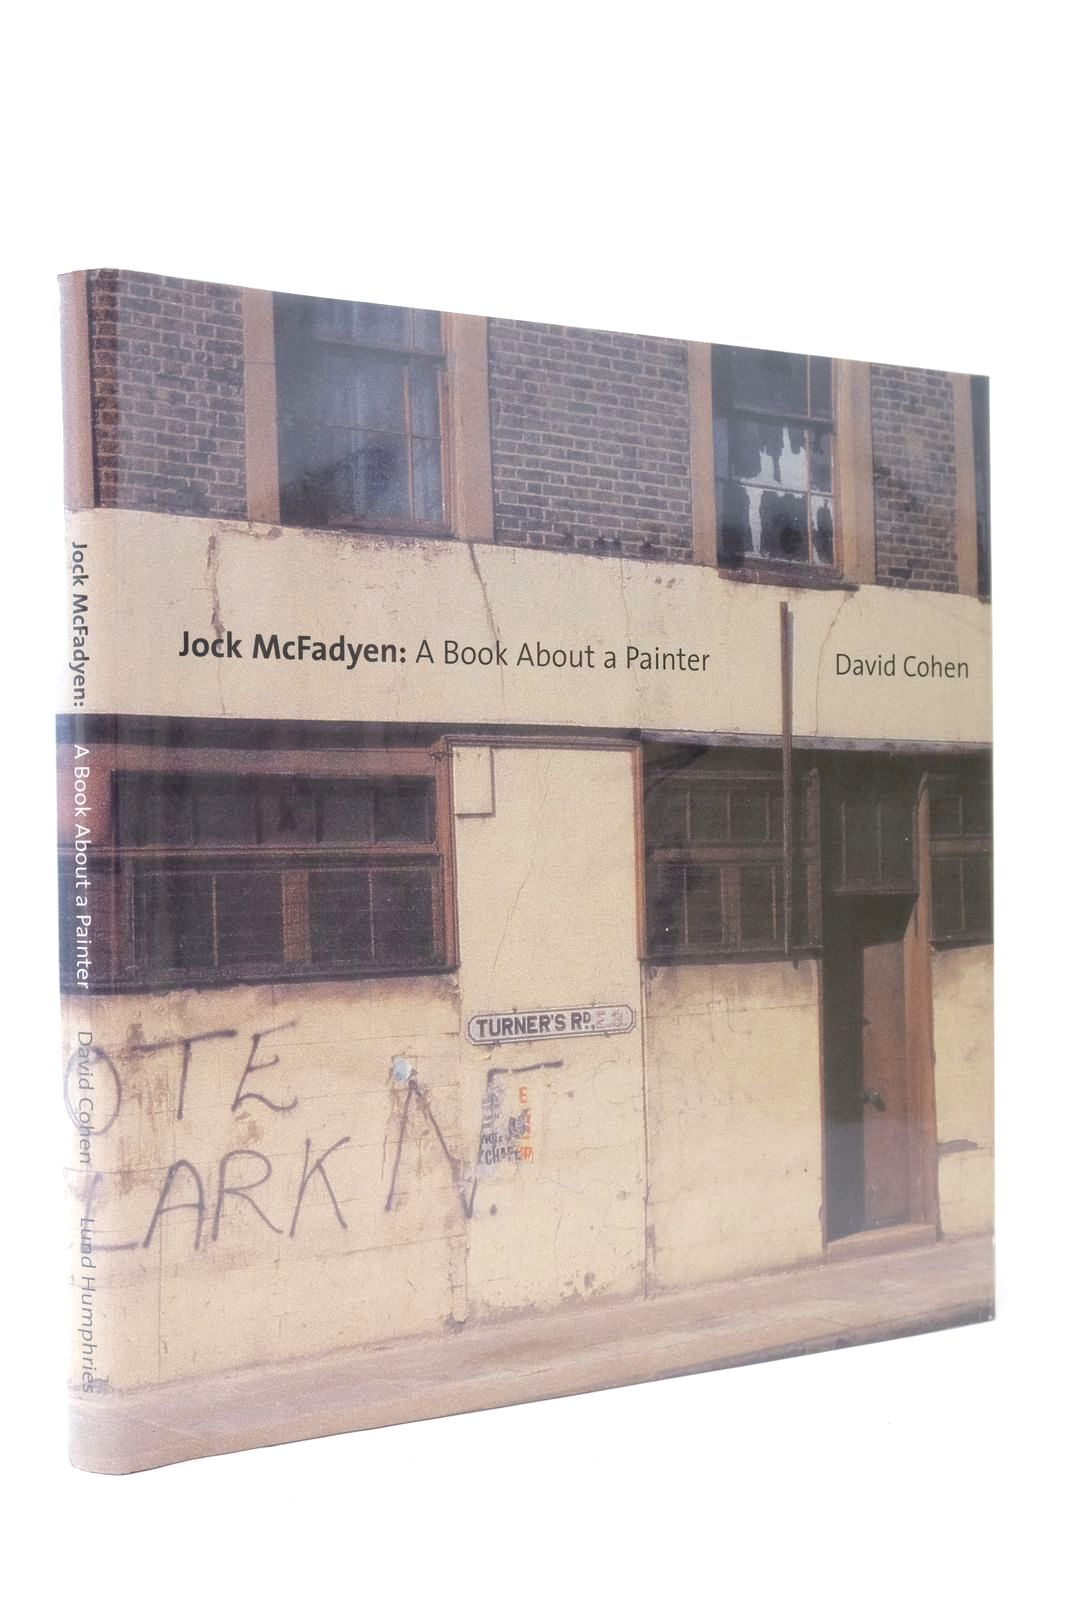 Photo of JOCK MCFADYEN: A BOOK ABOUT A PAINTER written by Cohen, David et al, illustrated by McFadyen, Jock published by Lund Humphries (STOCK CODE: 2134830)  for sale by Stella & Rose's Books